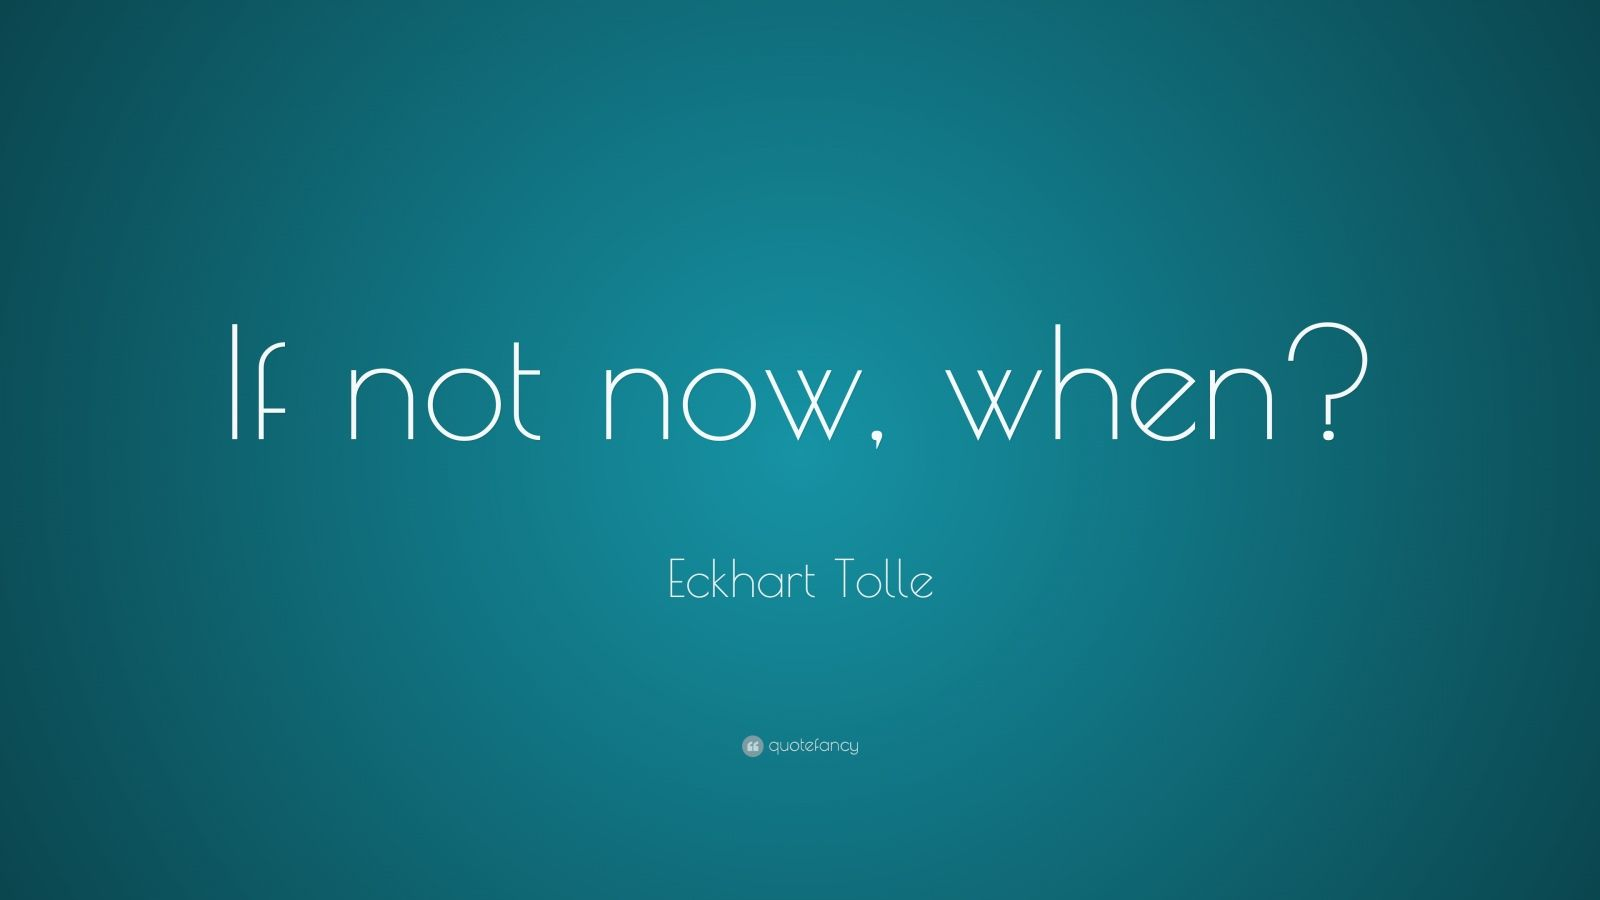 Inspirational Quotes About Life Wallpaper Eckhart Tolle Quotes 28 Wallpapers Quotefancy